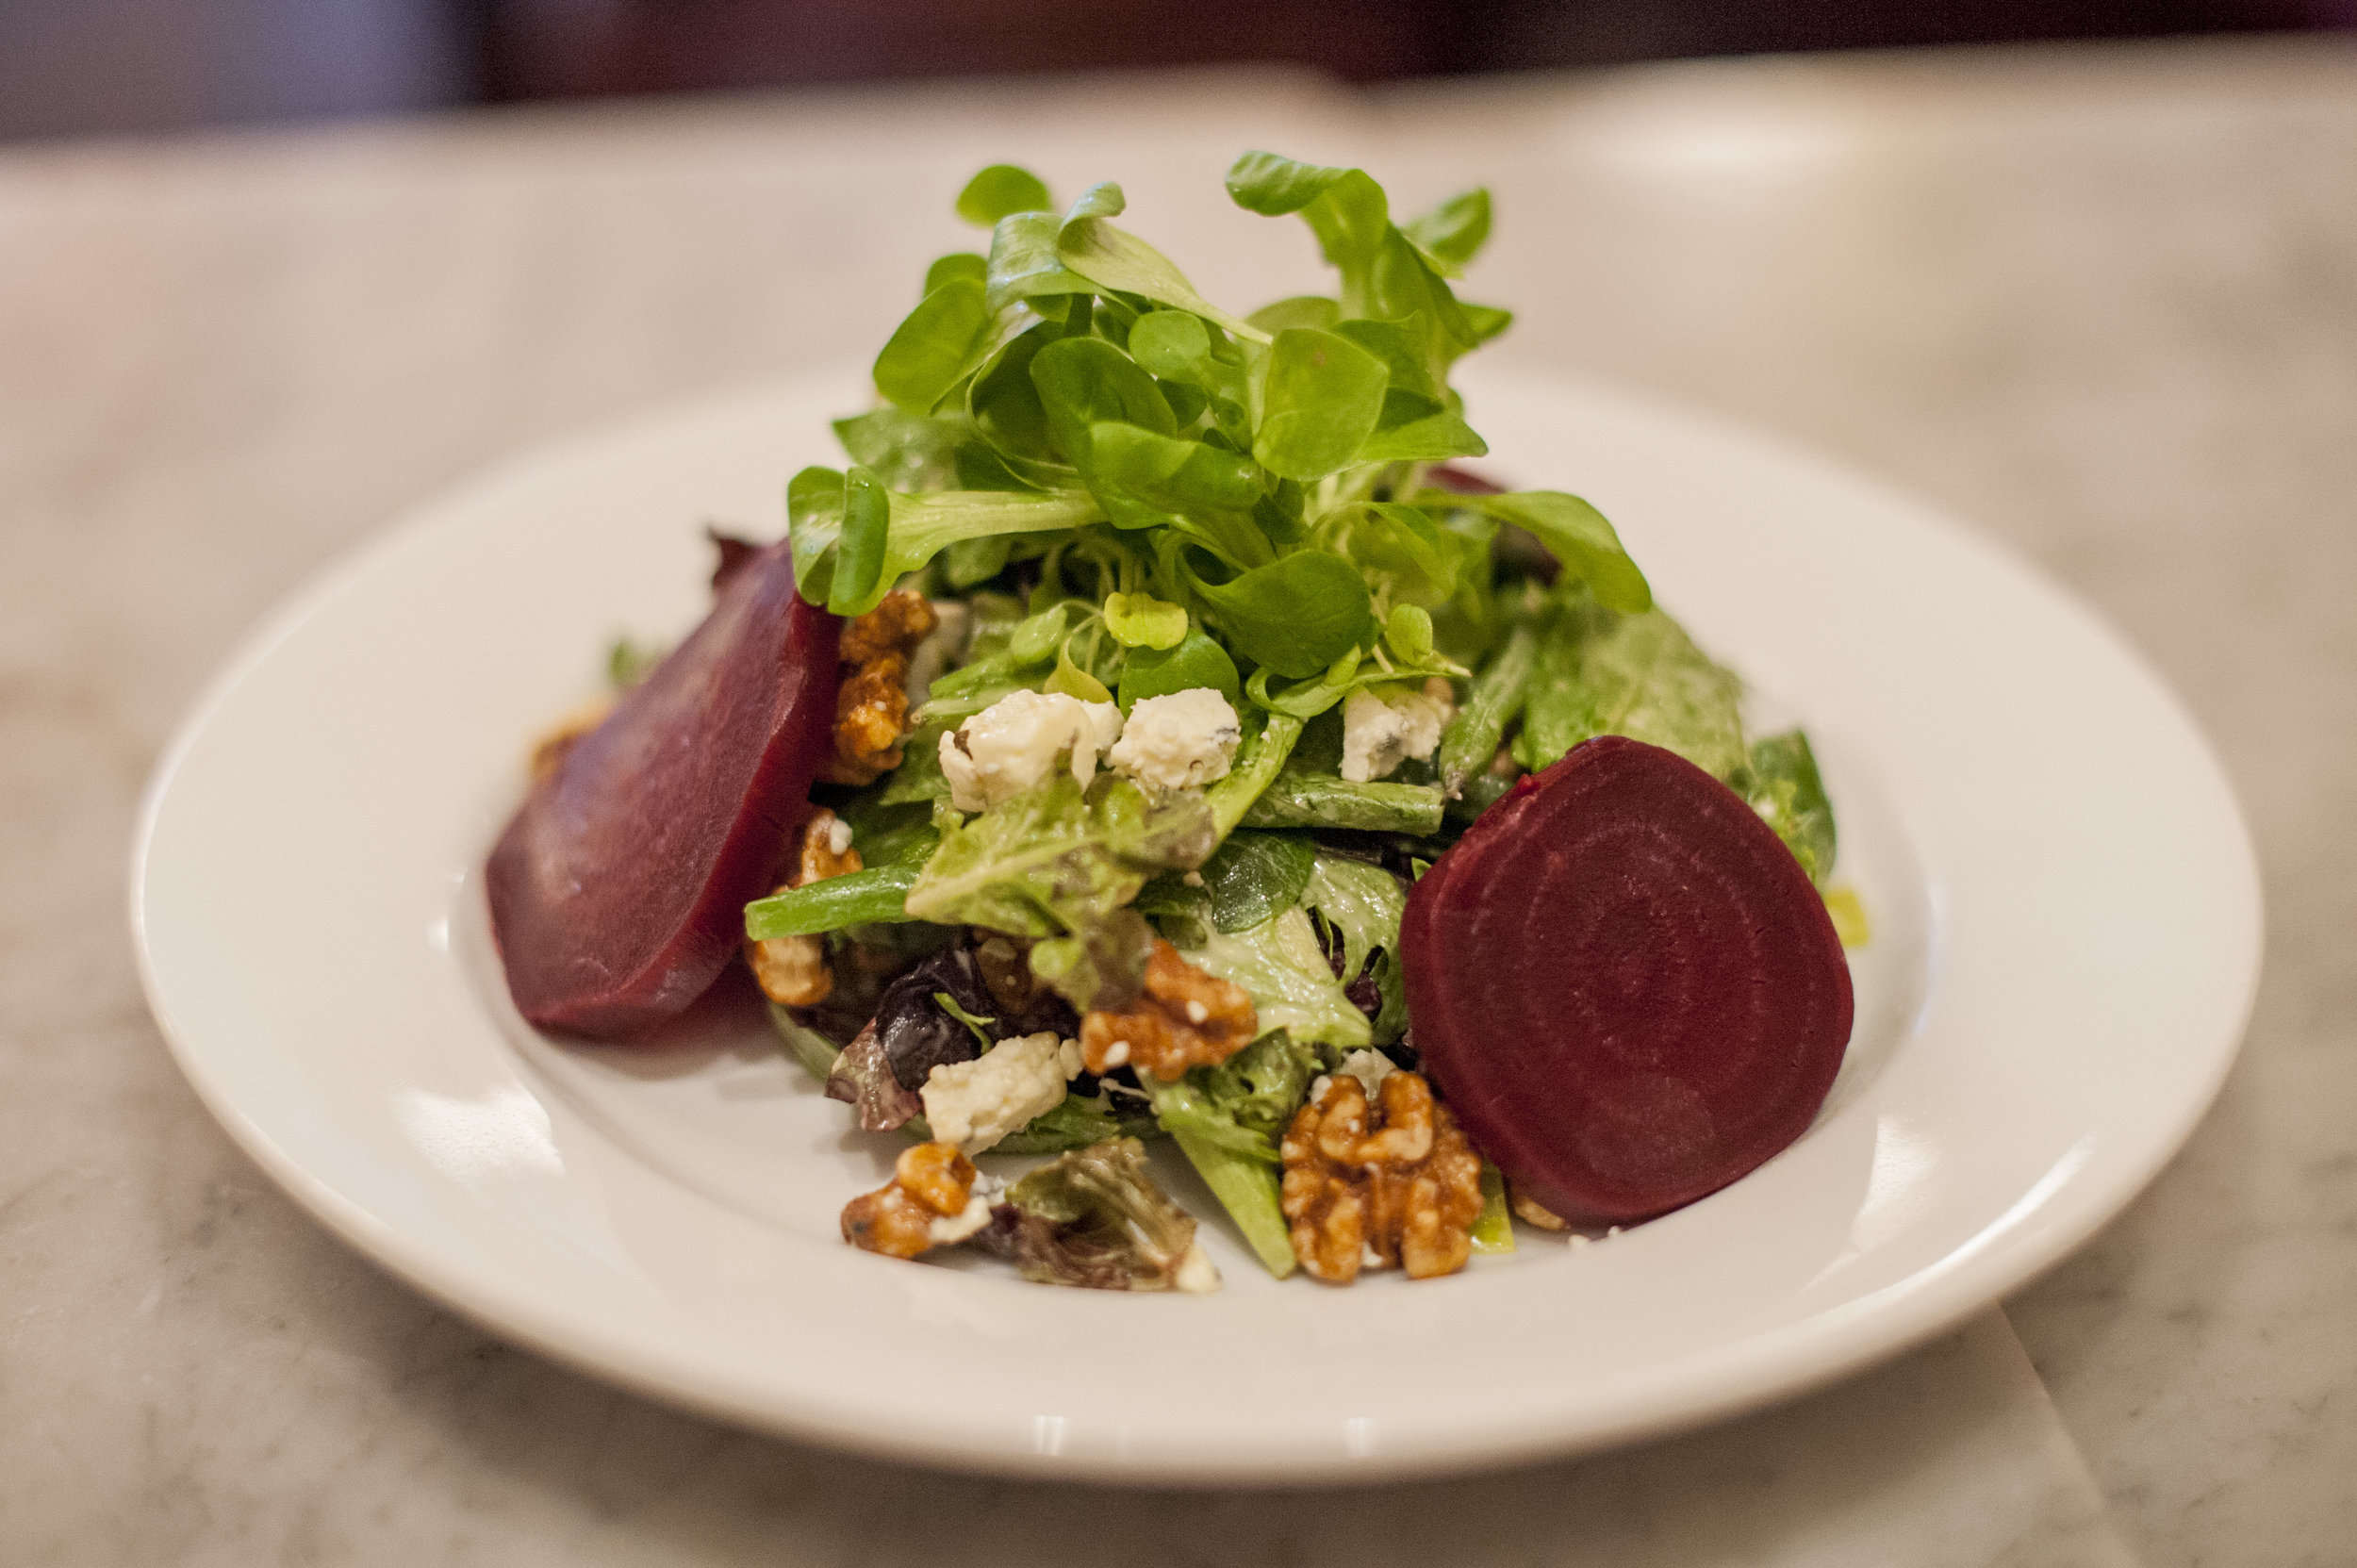 Long Islander News photos/Jano Tantongco The Salade Cassis features microgreens, Roquefort cheese, roasted beets, walnuts, French beans, poached leeks and dijon vinaigrette, creating a mix of bold and fresh flavors.